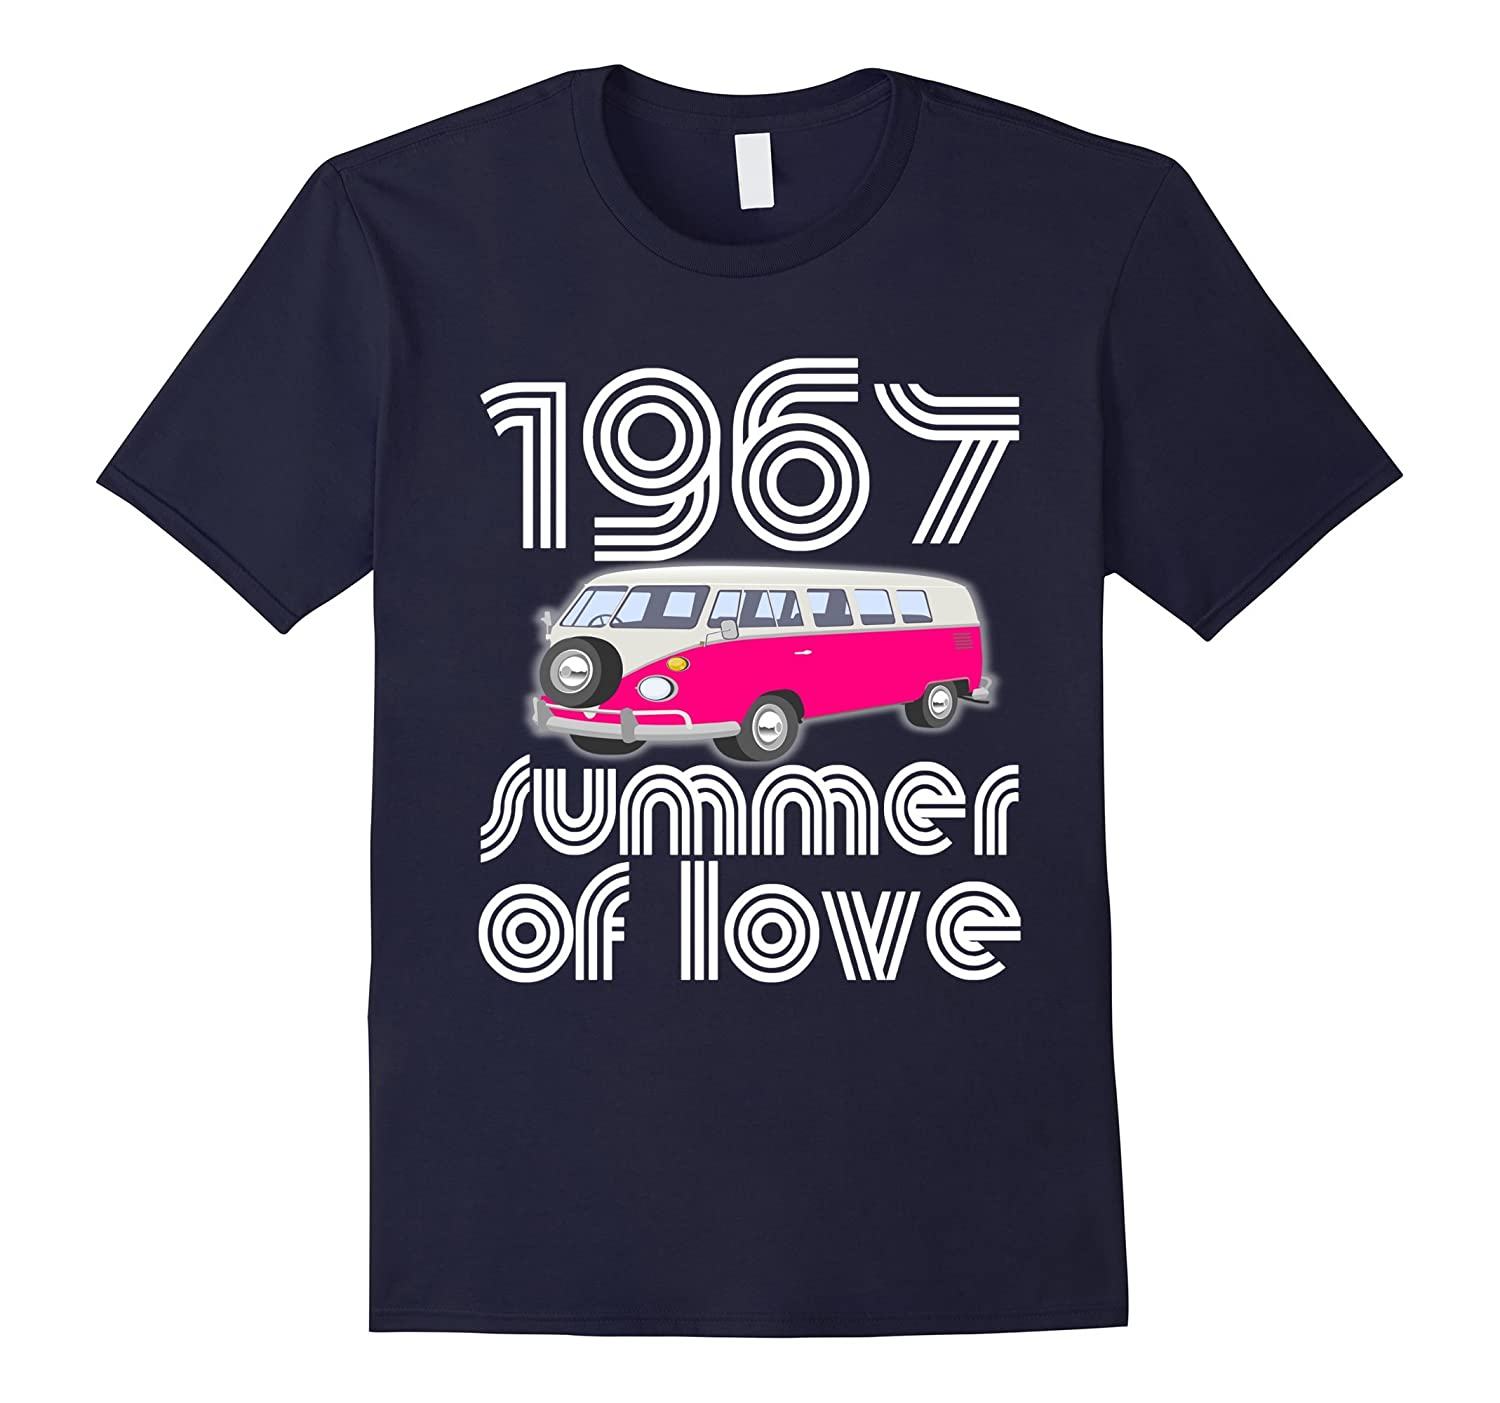 1967 Summer of Love Retro Tees Vintage Sixties Hippie Shirt-ANZ